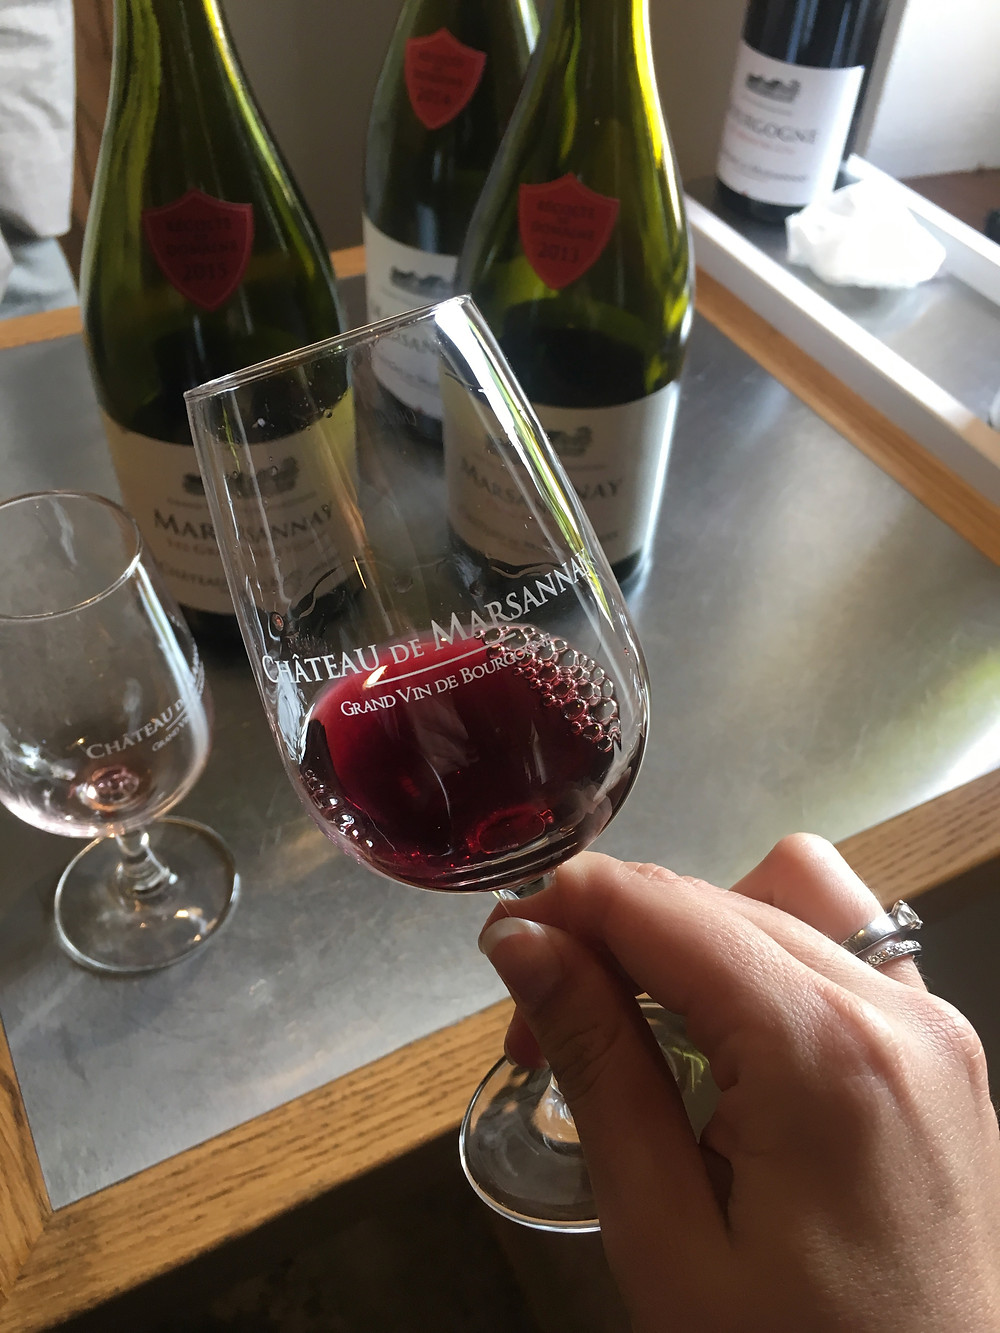 Tasting a selection of wines from chateau de Marsannay